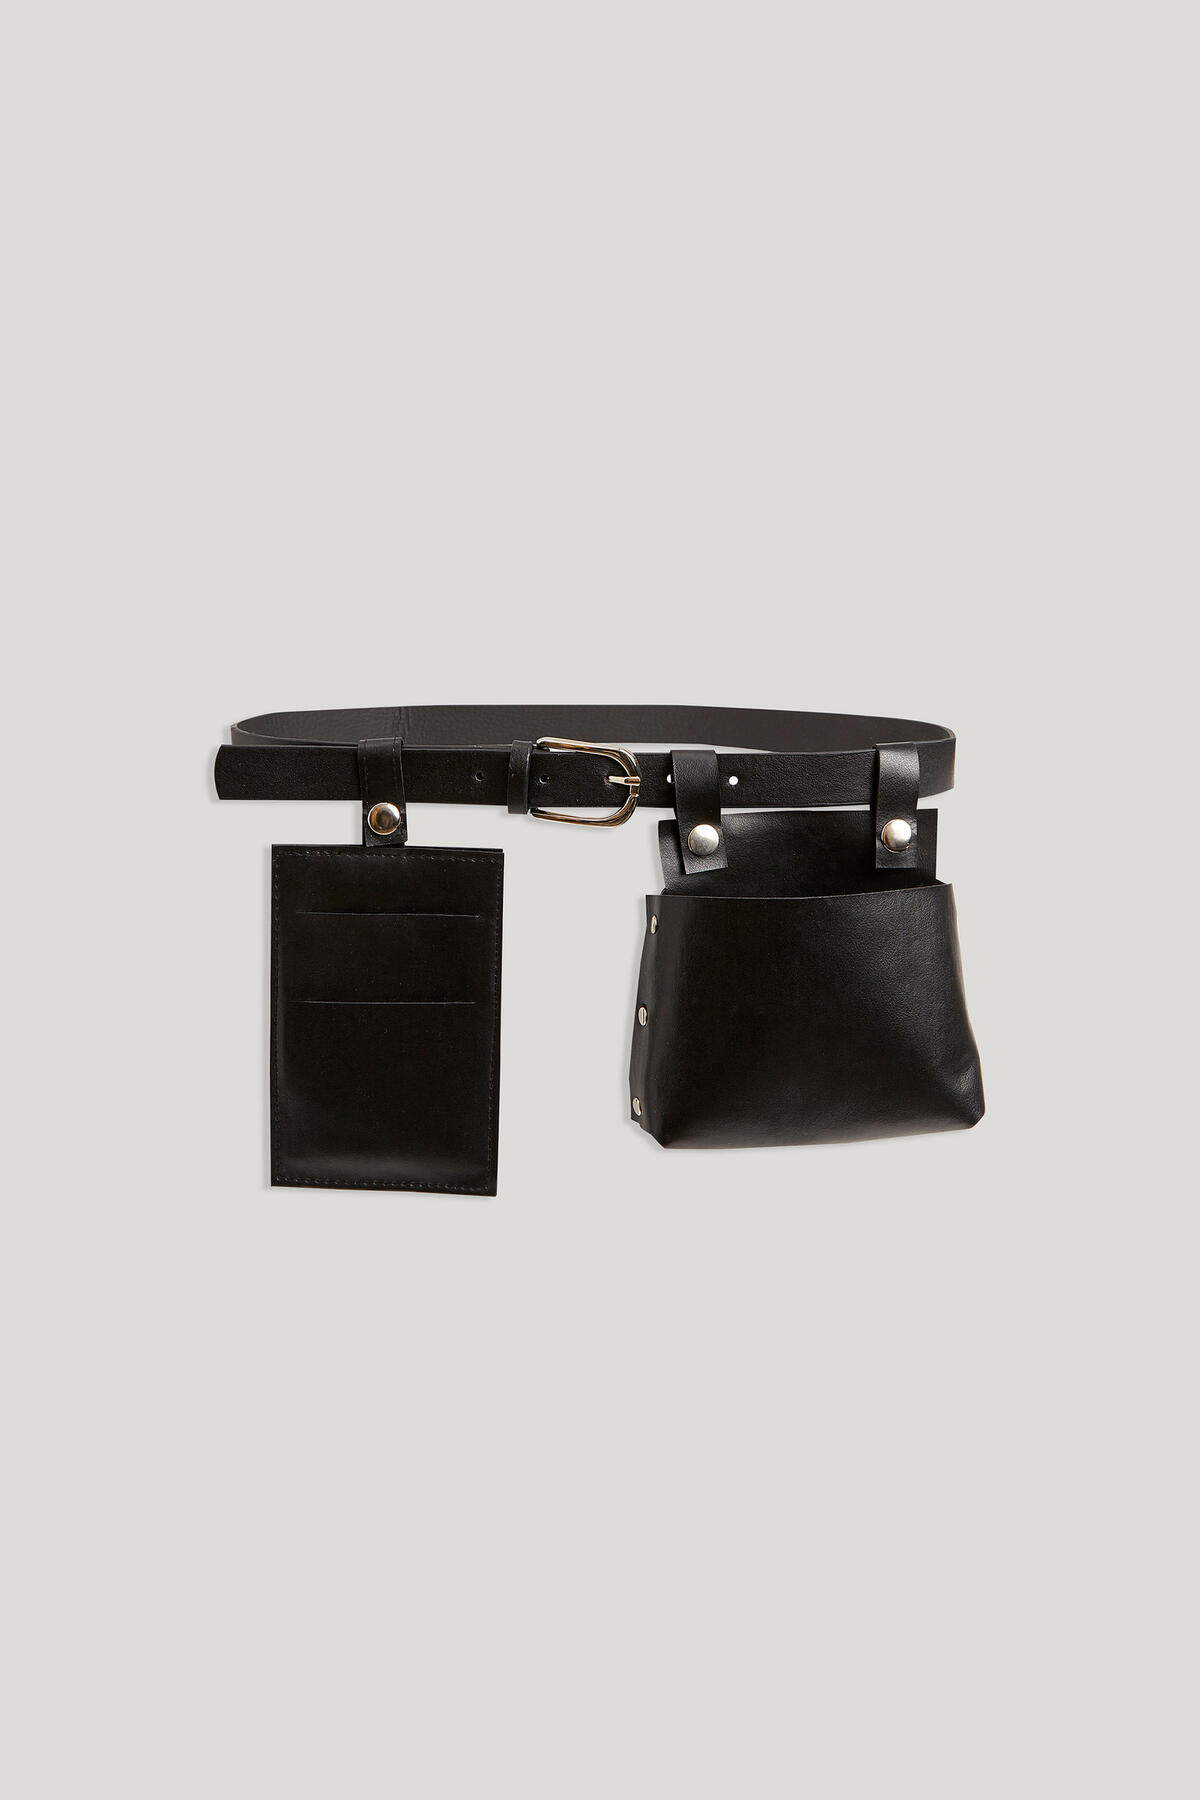 Kevser Sarıoğlu - BELT WITH CARD HOLDER